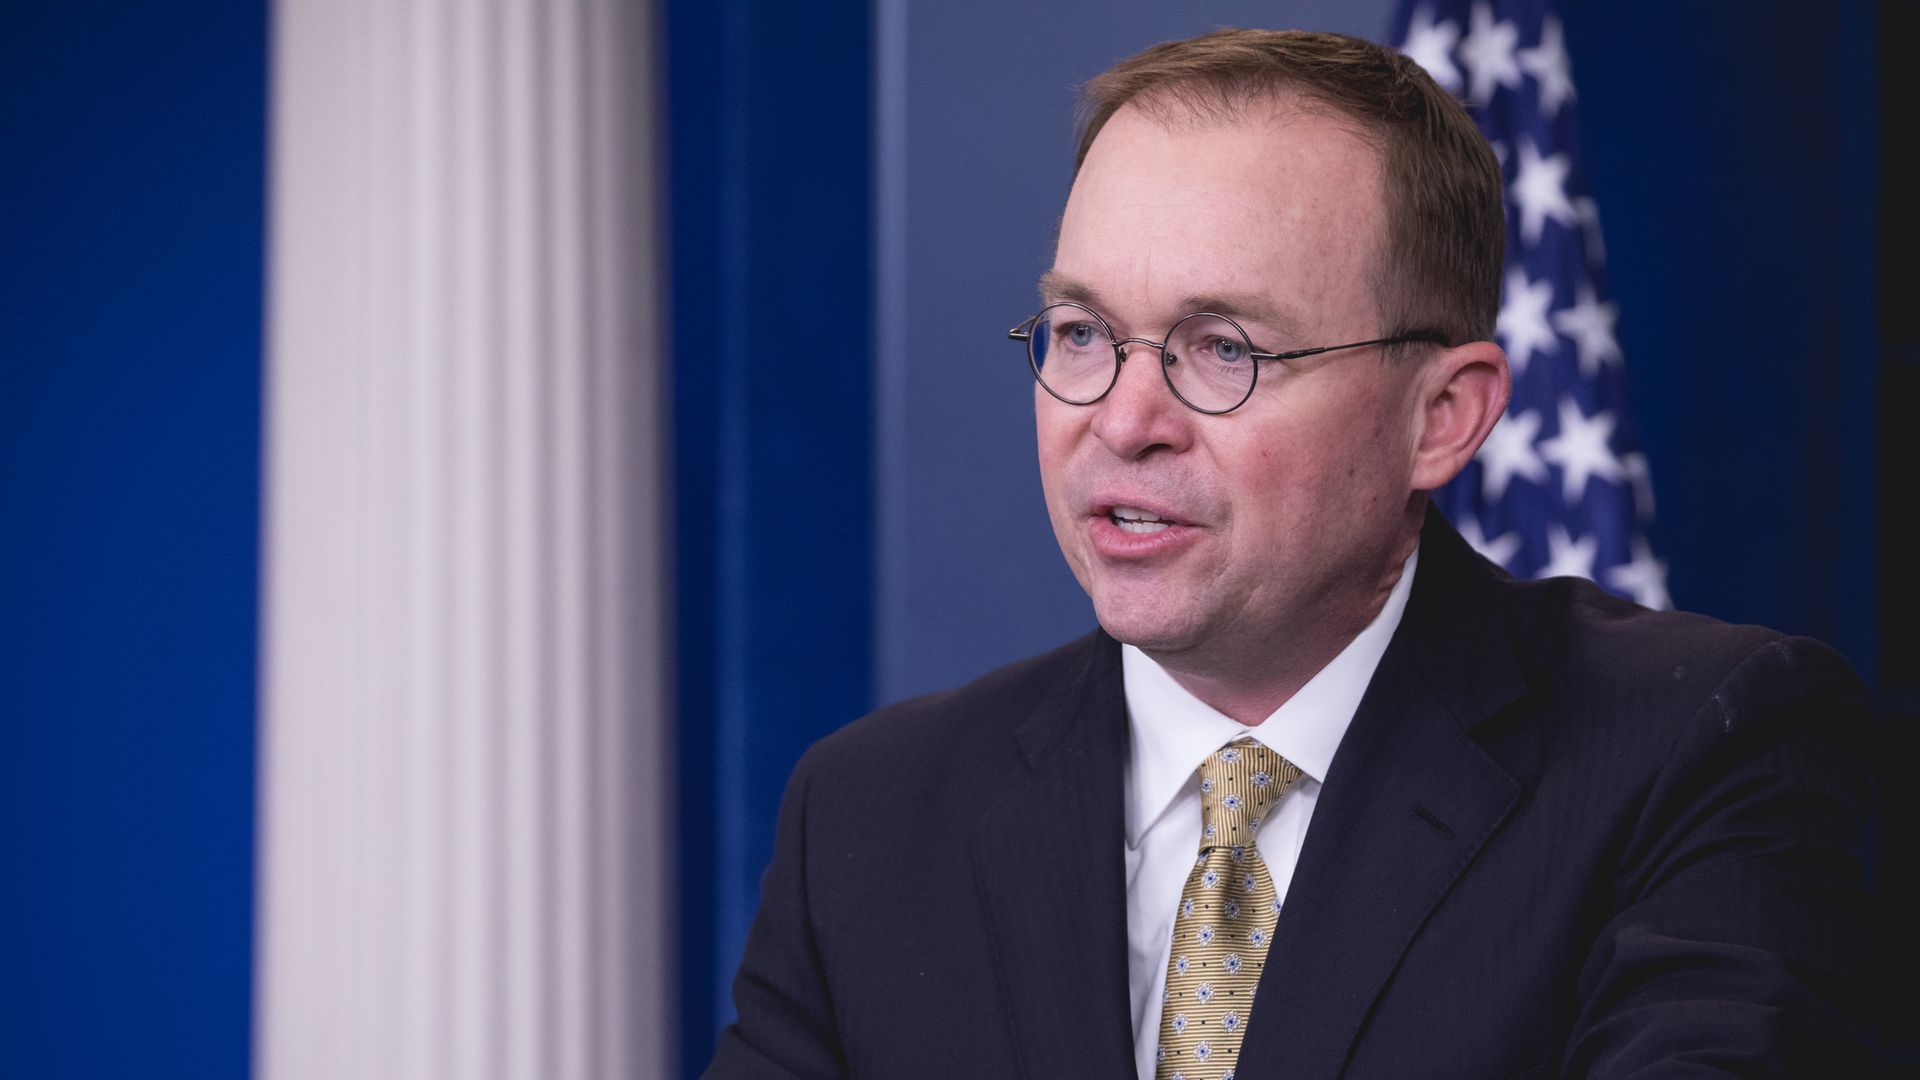 Mick Mulvaney, White House budget chief and acting director of the Consumer Financial Protection Bureau